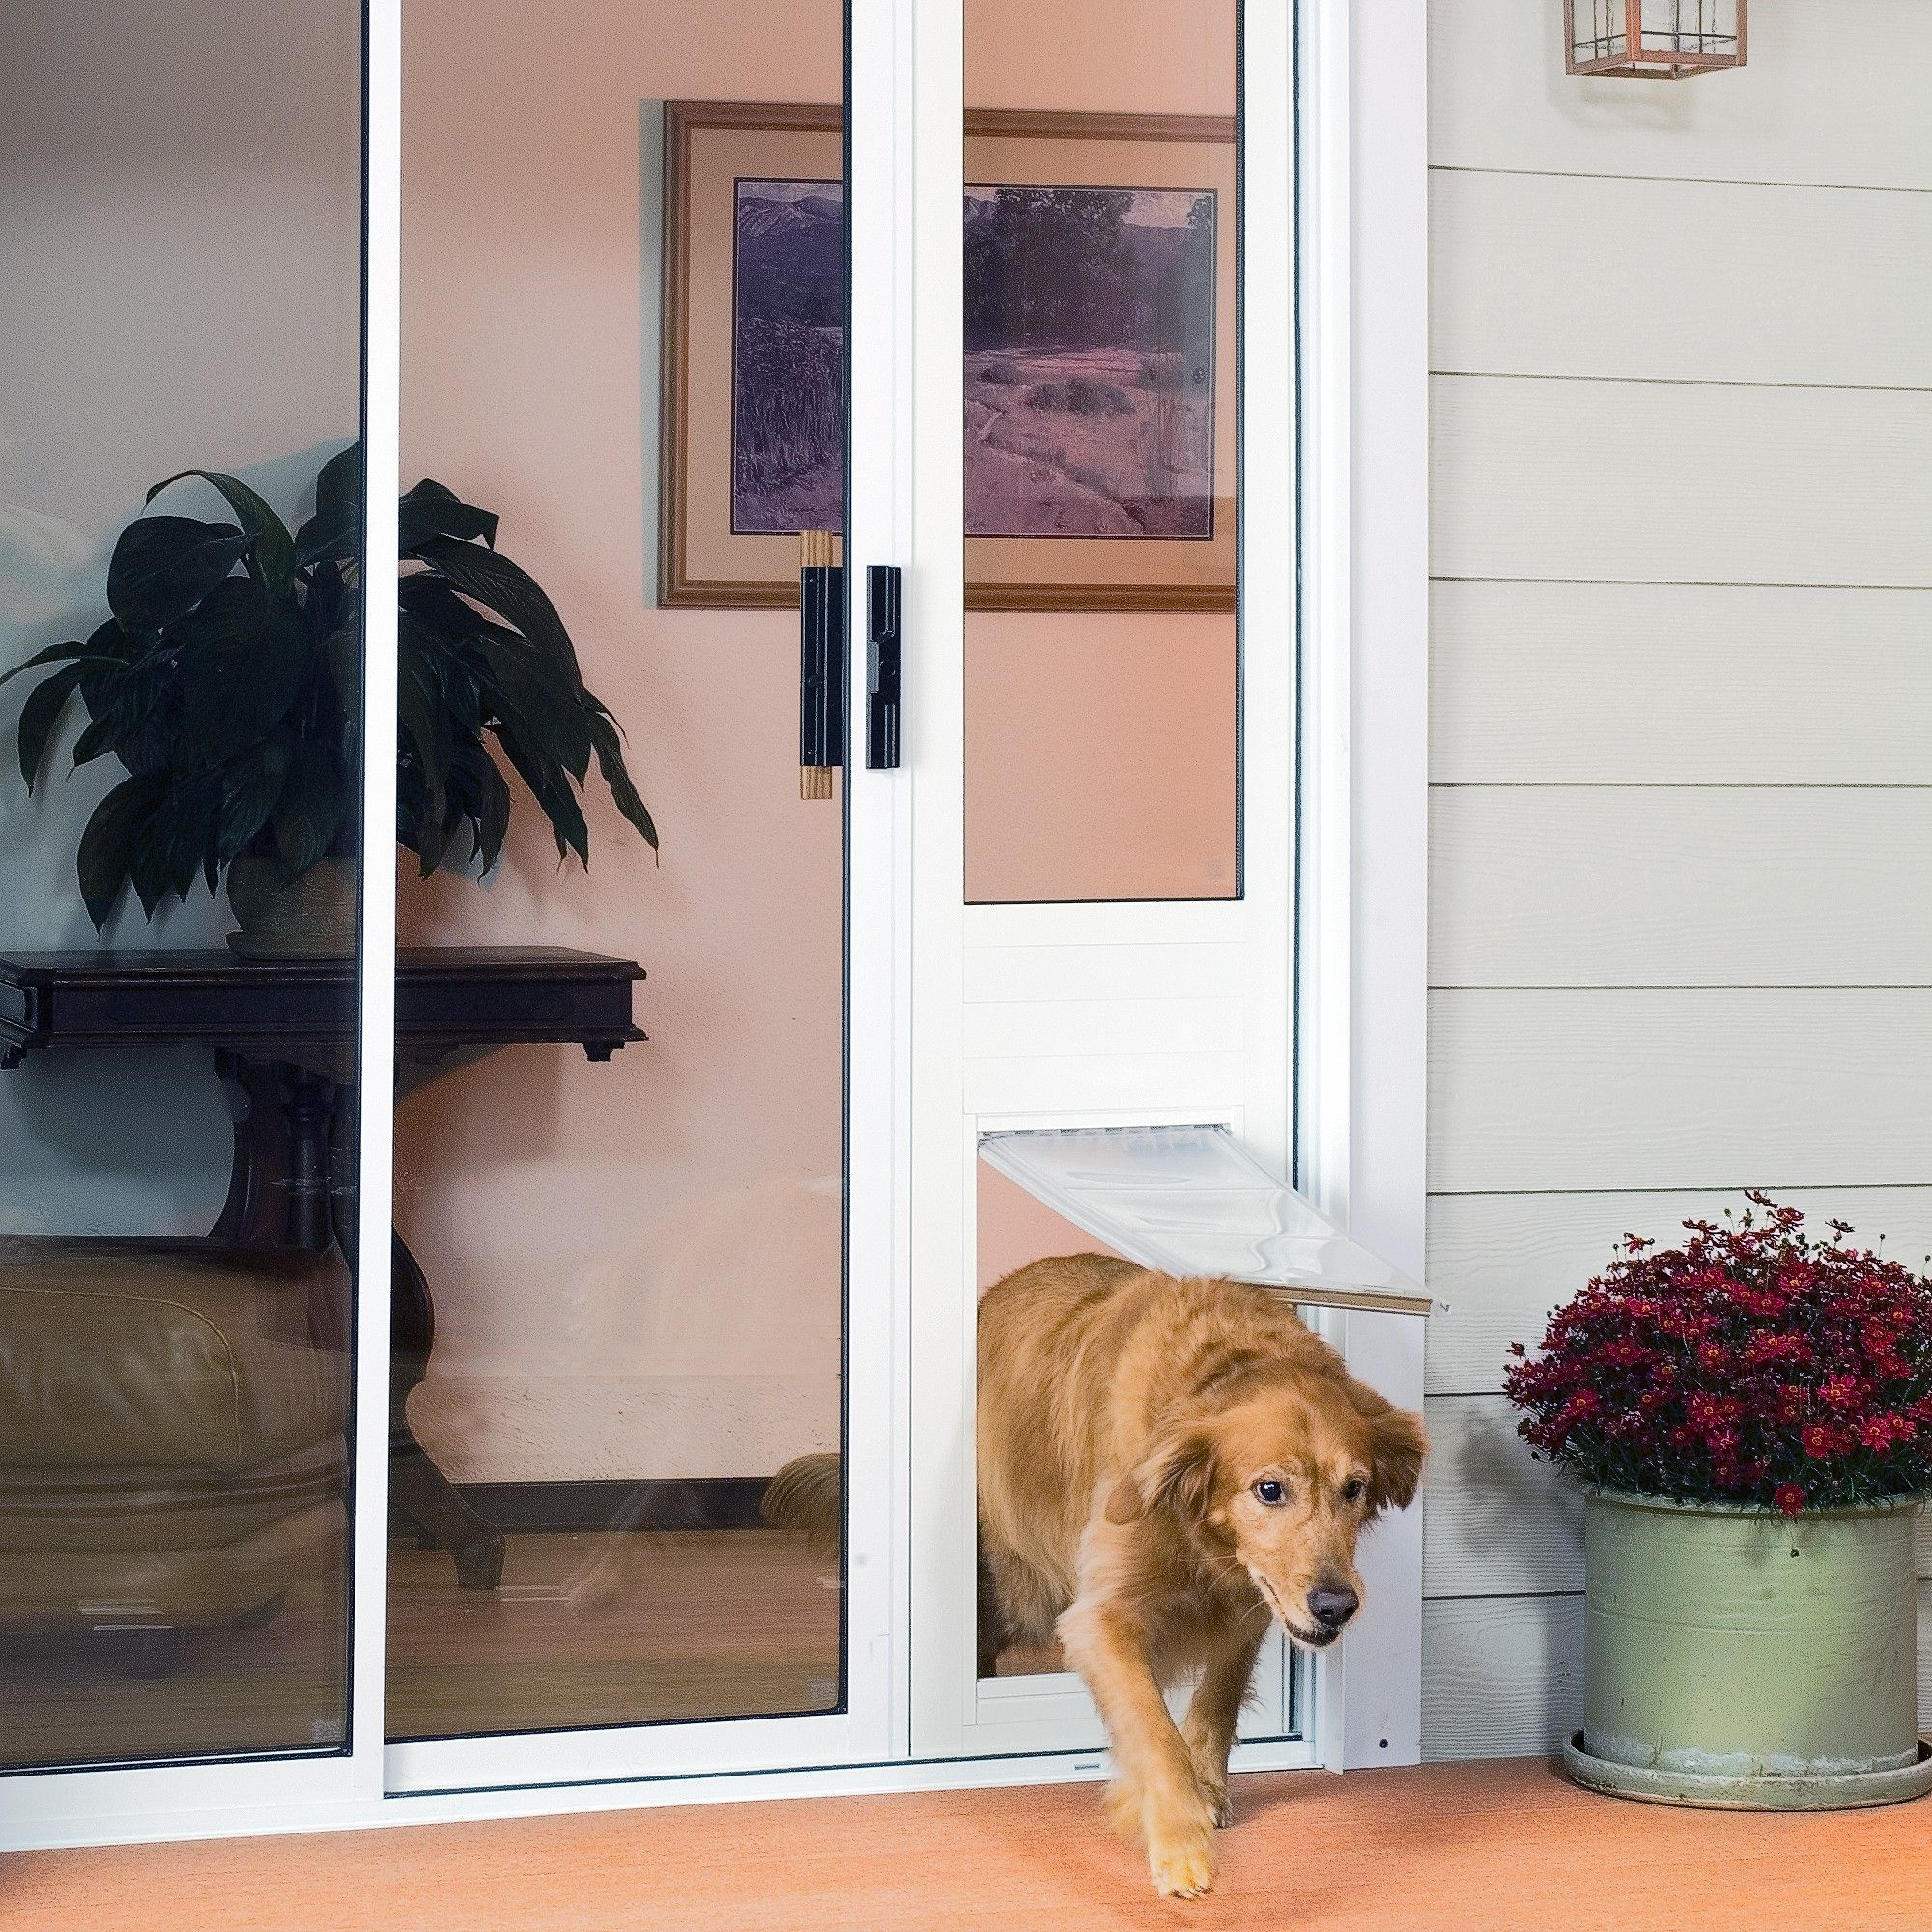 The patio pacific dog doors for sliding glass doors is is a great the patio pacific dog doors for sliding glass doors is is a great pet patio door eventelaan Image collections